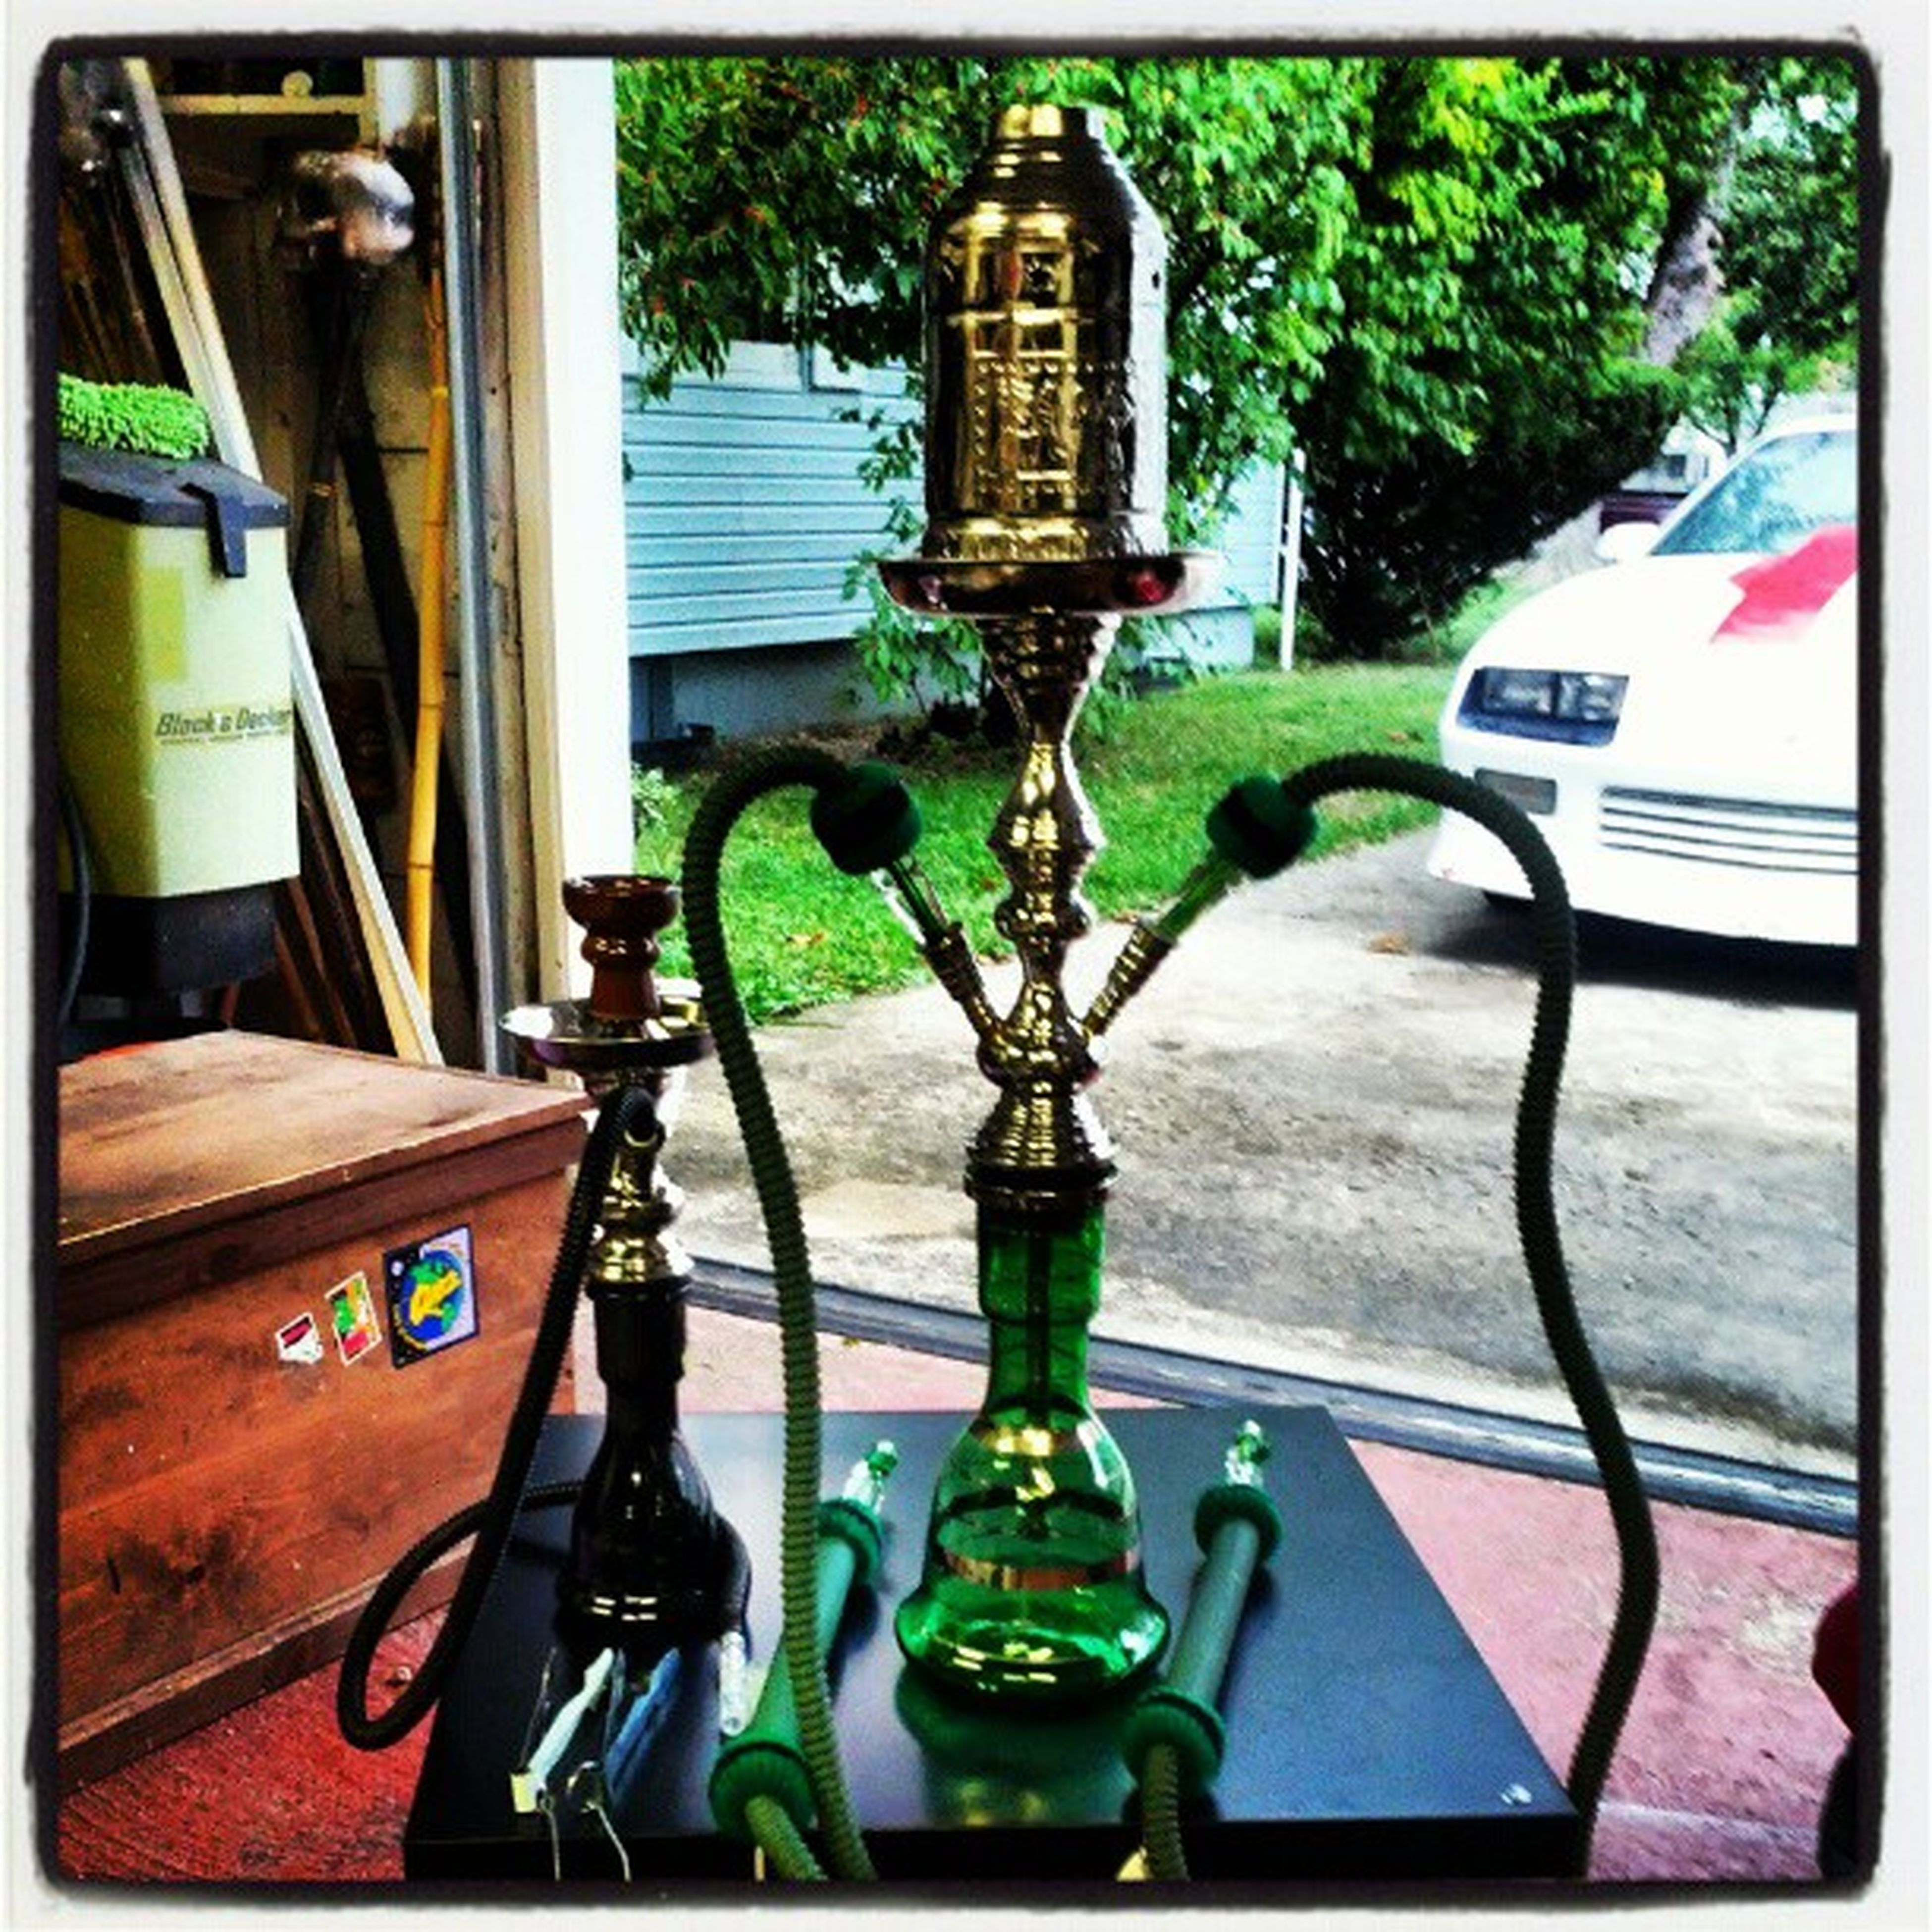 Got my first Hookah today, its an Egyptionhookah I got the Nammor hoses and a Vortexbowl